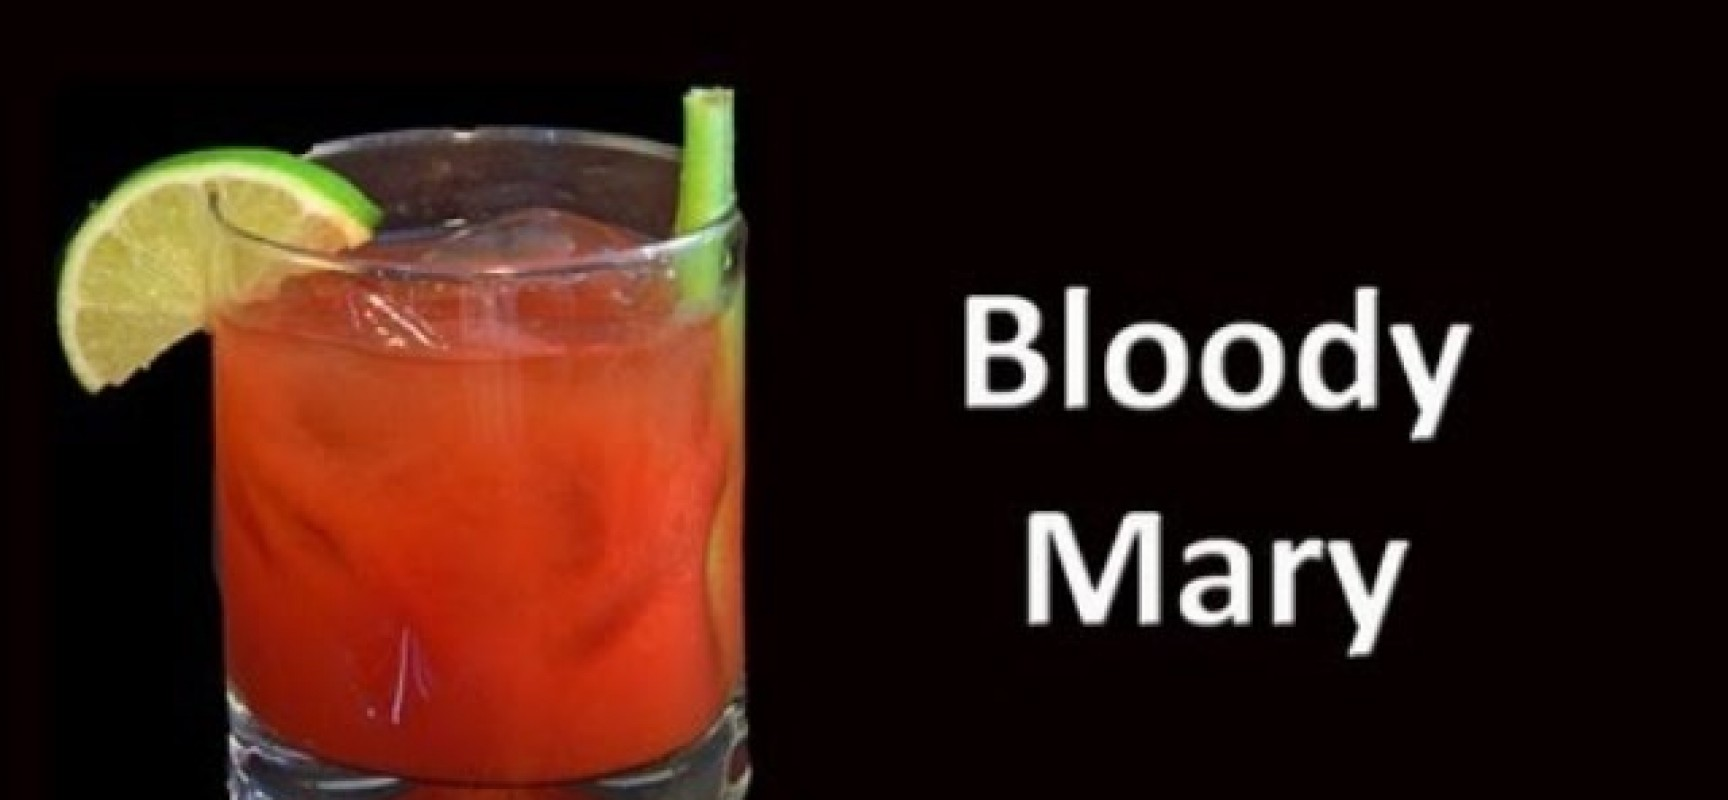 Bloody Mary: One of the Most Popular Cocktails